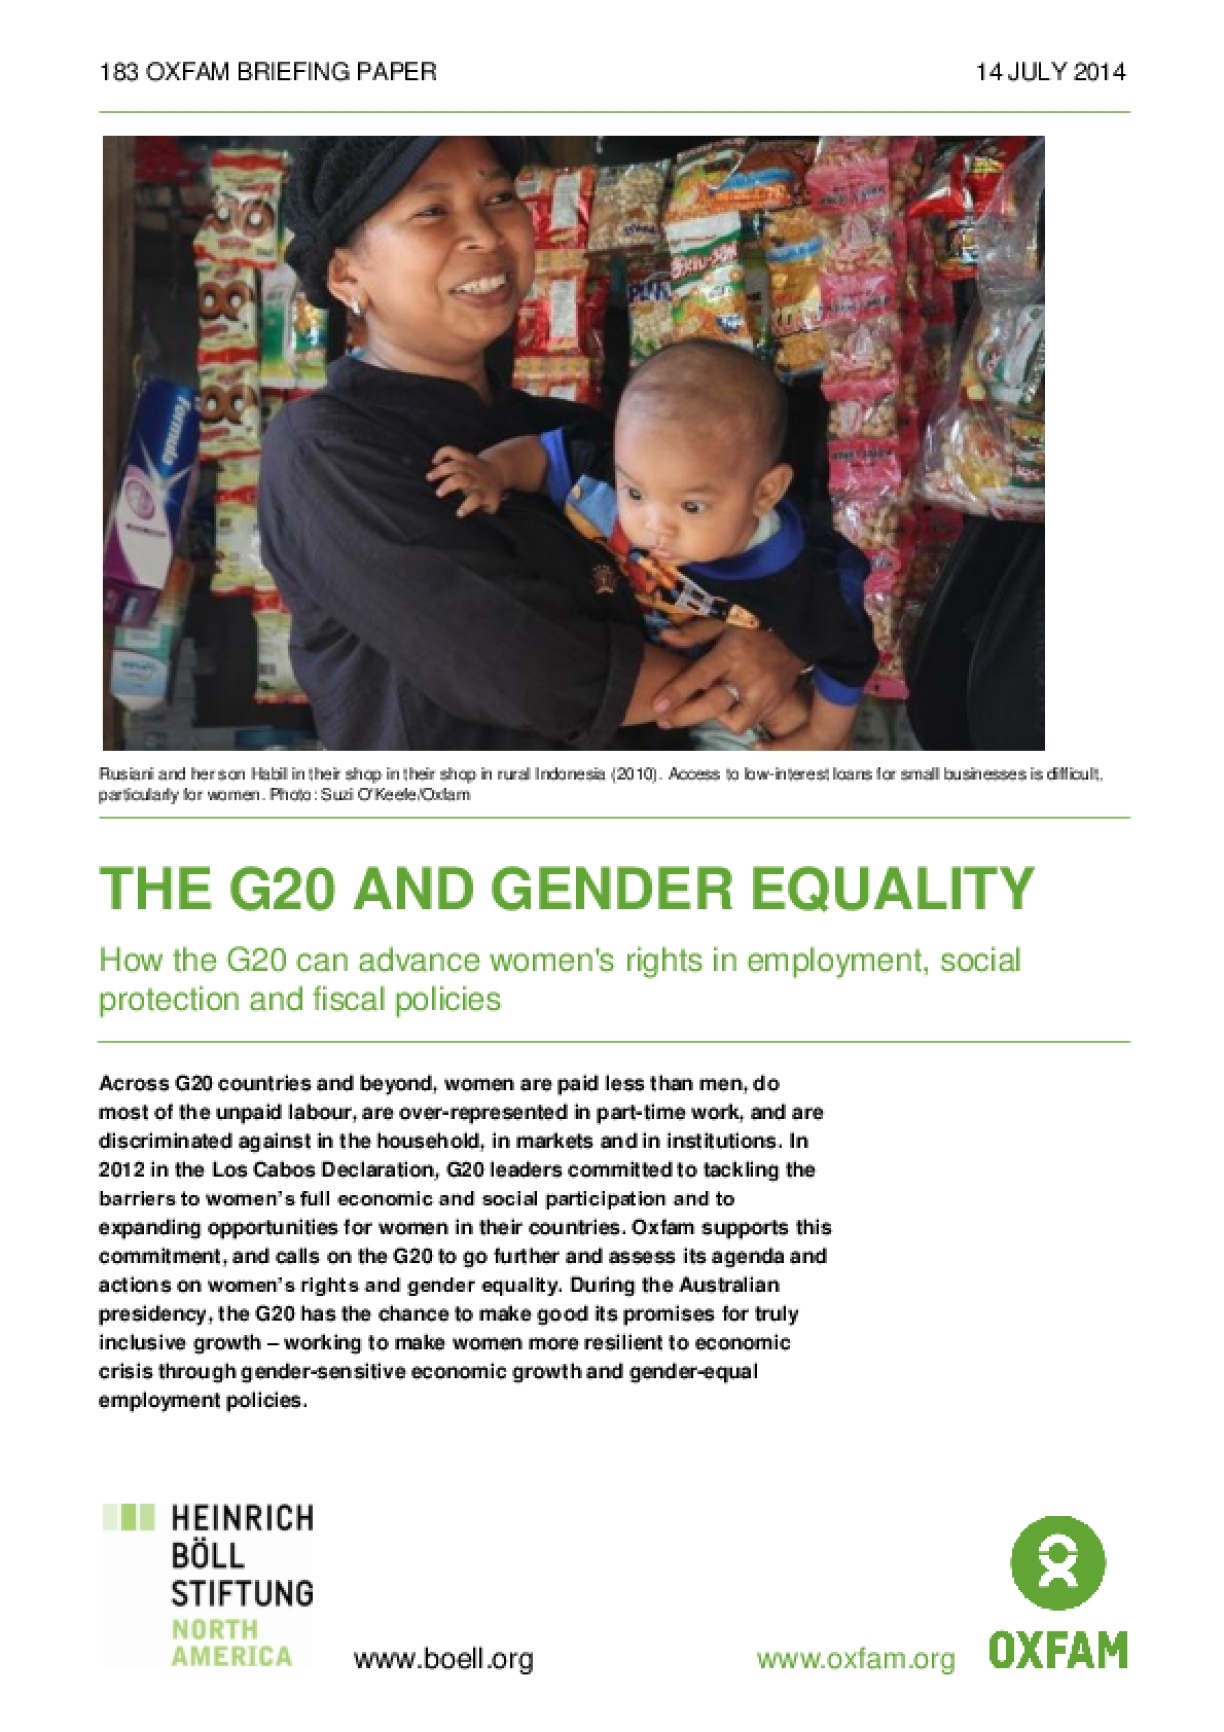 The G20 and Gender Equality: How the G20 Can Advance Women's Rights in Employment, Social Protection and Fiscal Policies